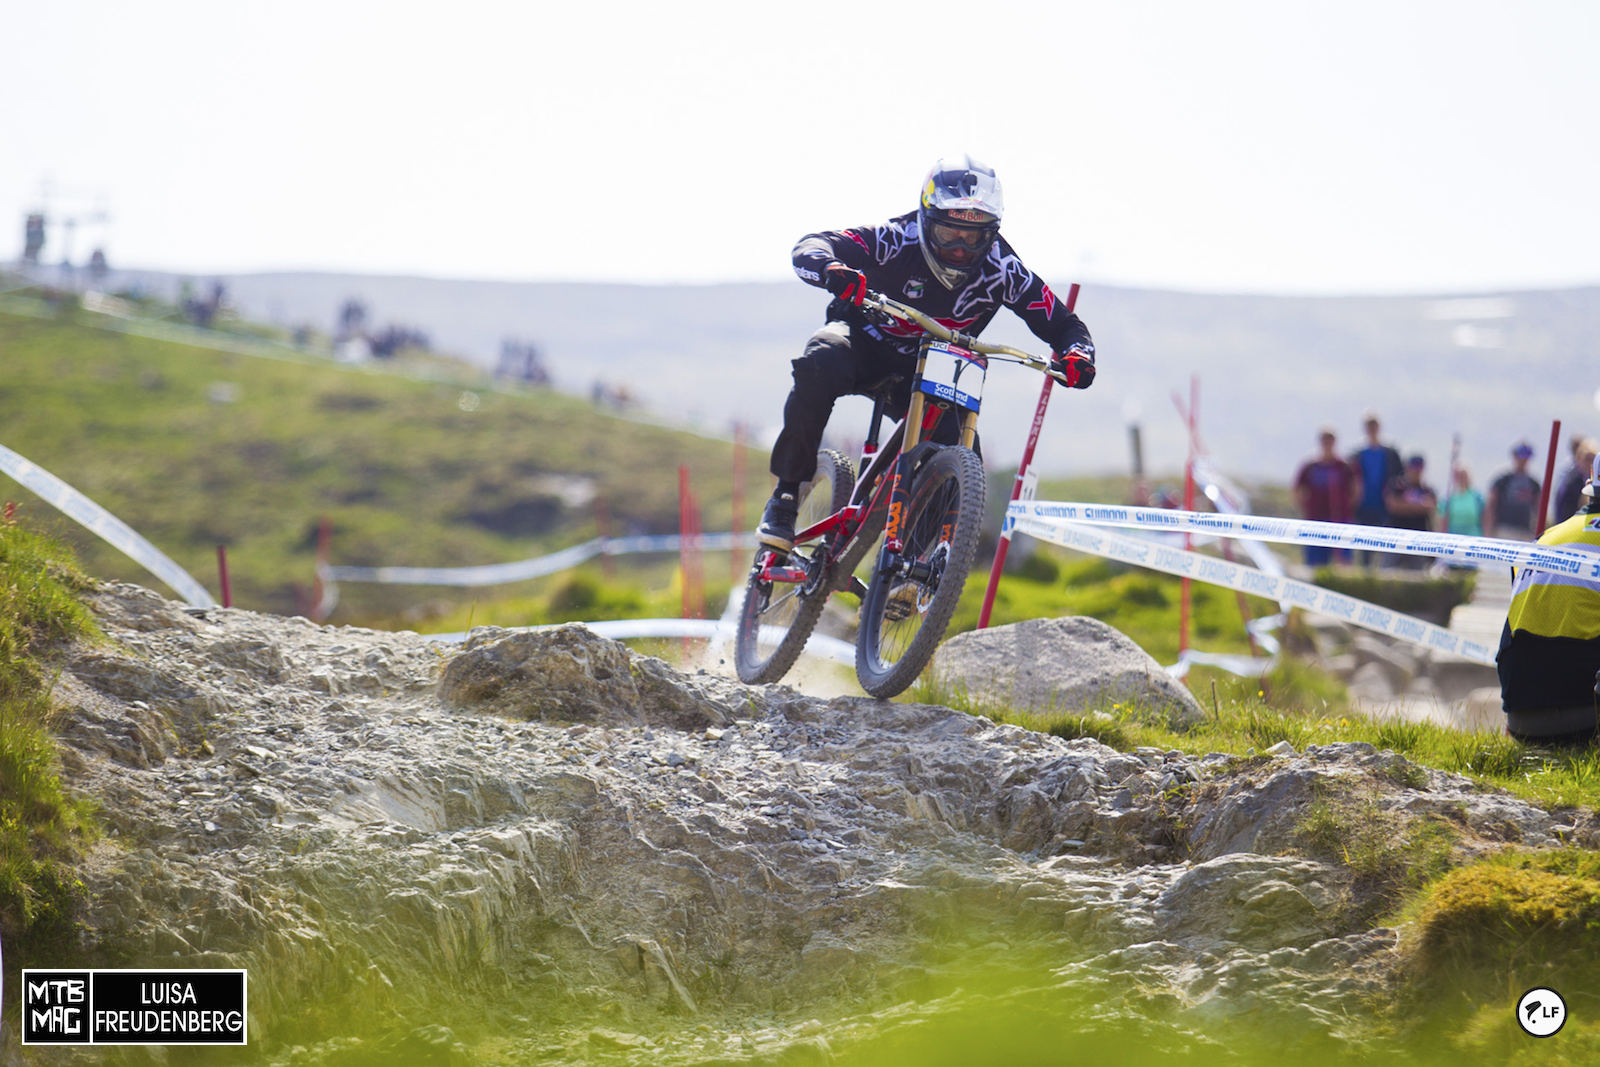 Aaron Gwin is on form, but hasn't done all that well at Fort William in the past.